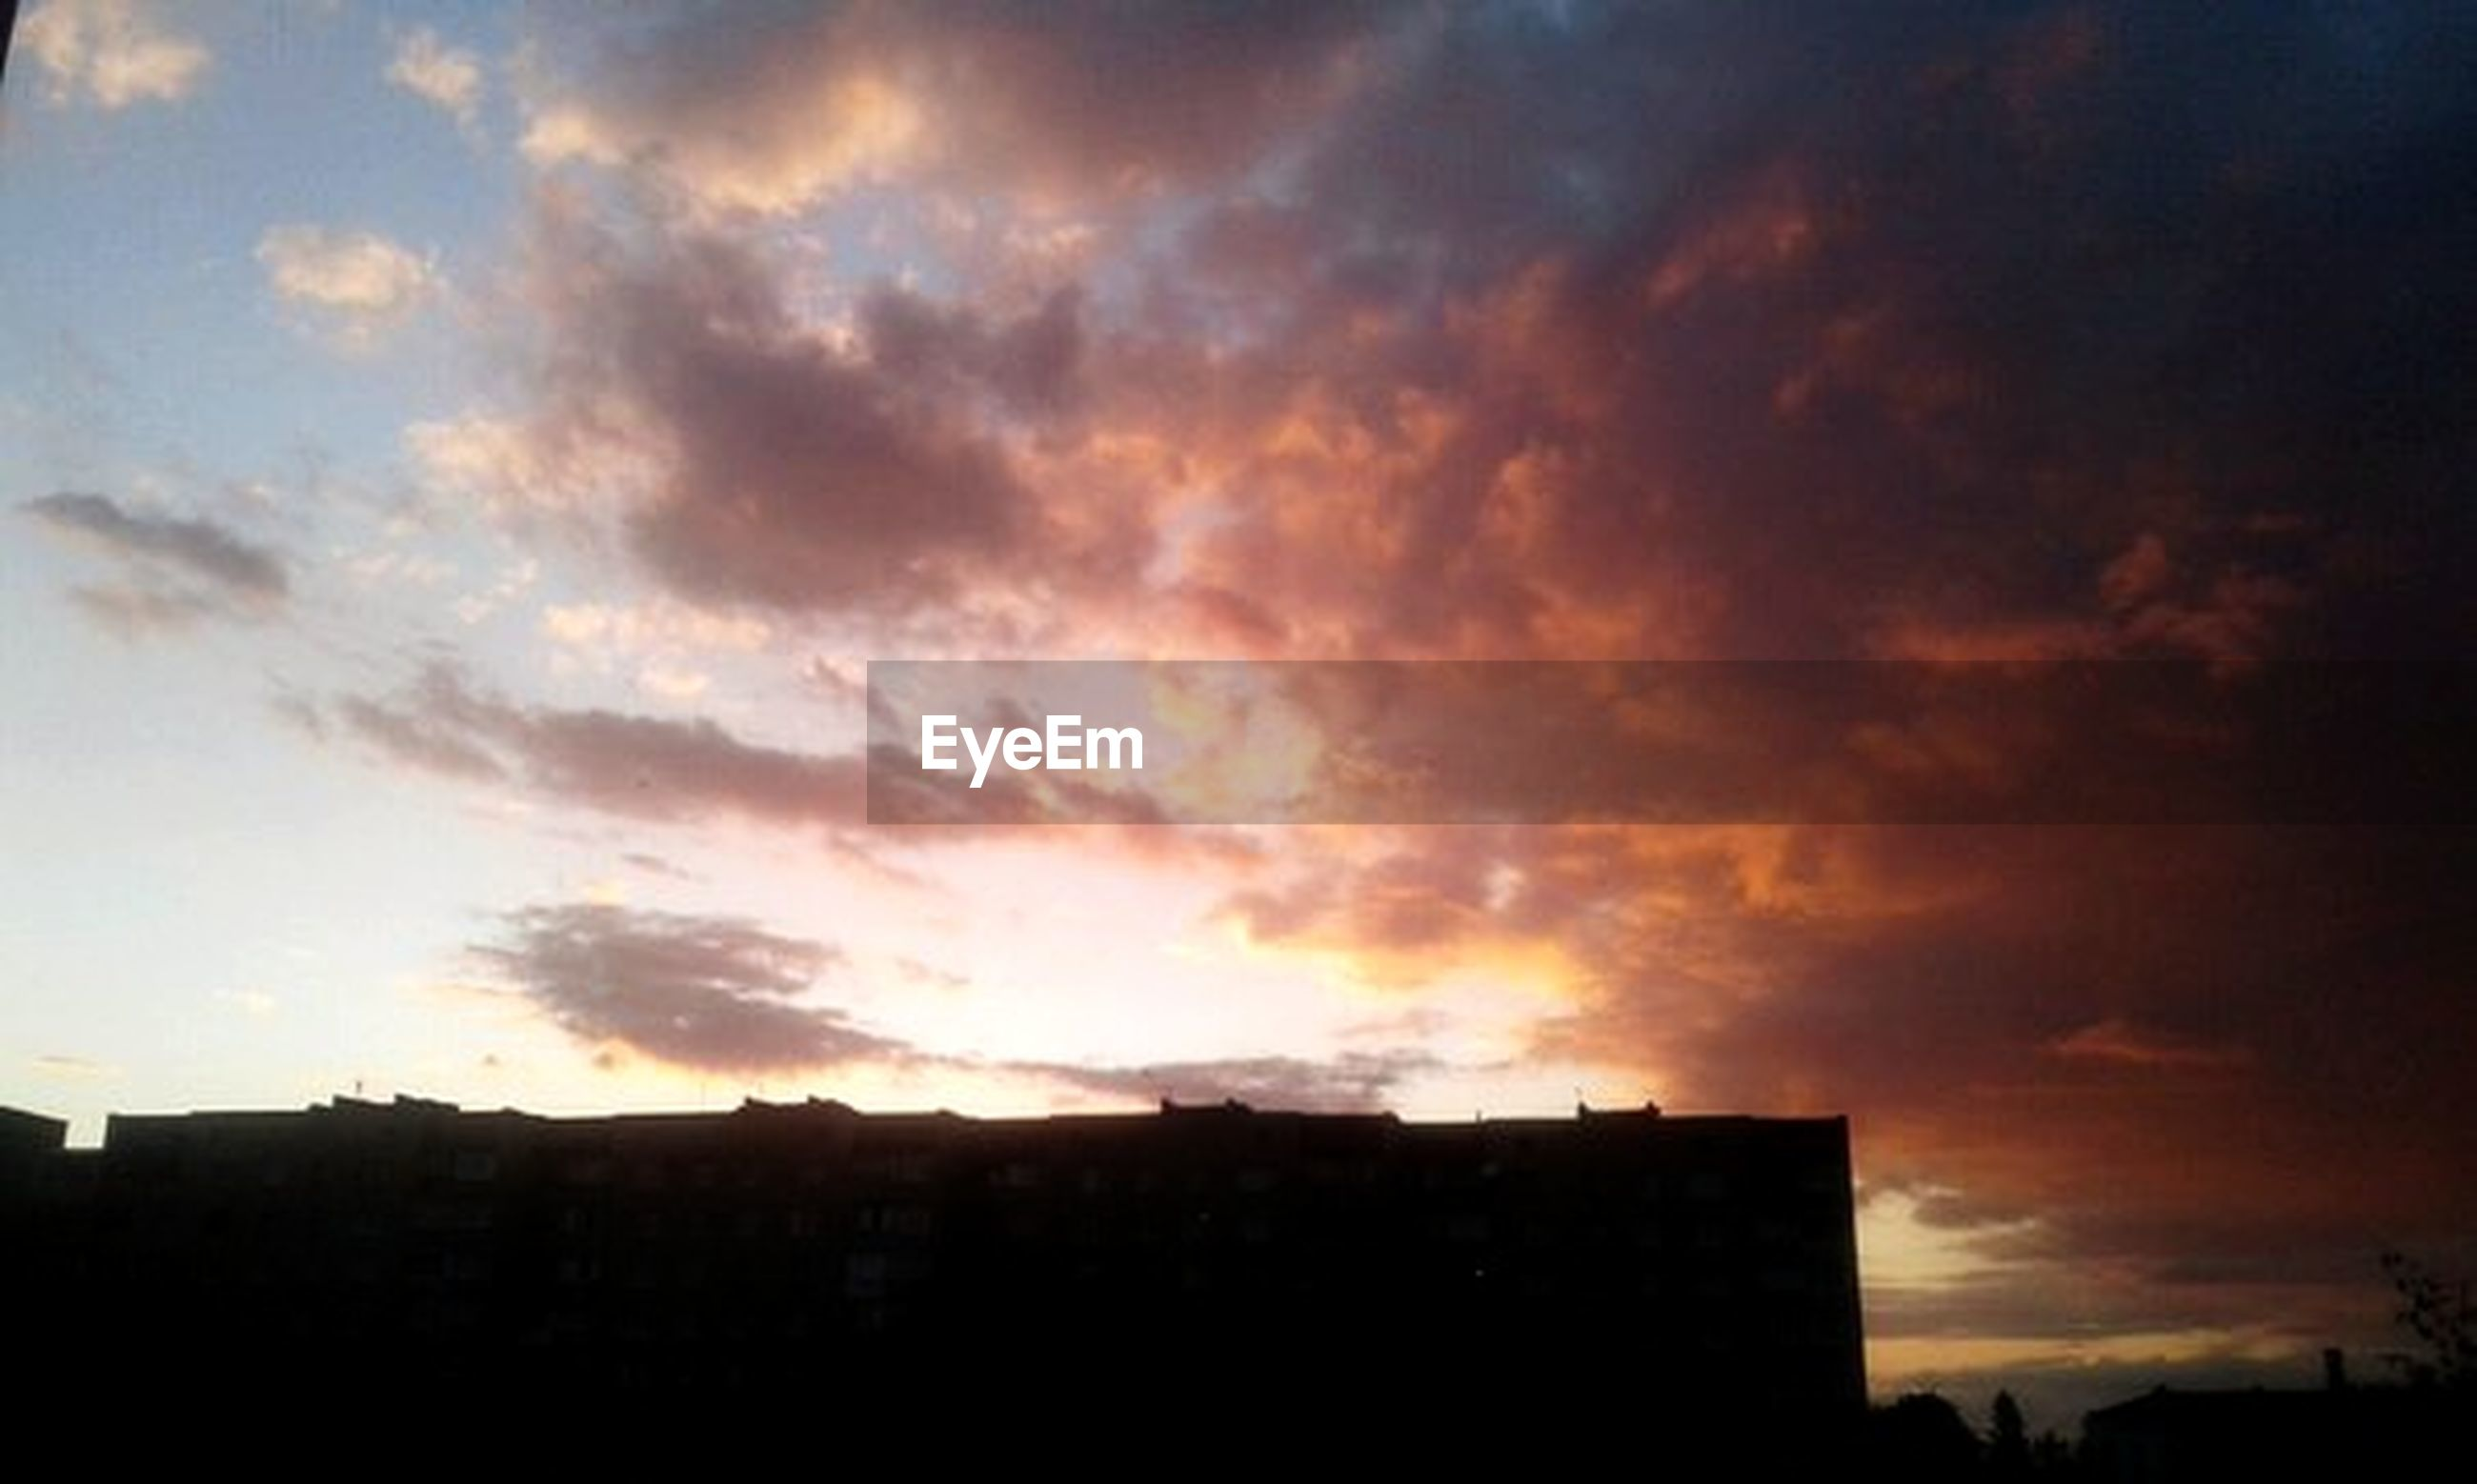 sunset, silhouette, sky, building exterior, architecture, built structure, cloud - sky, cloud, cloudy, orange color, low angle view, beauty in nature, scenics, city, nature, dramatic sky, outdoors, house, building, no people